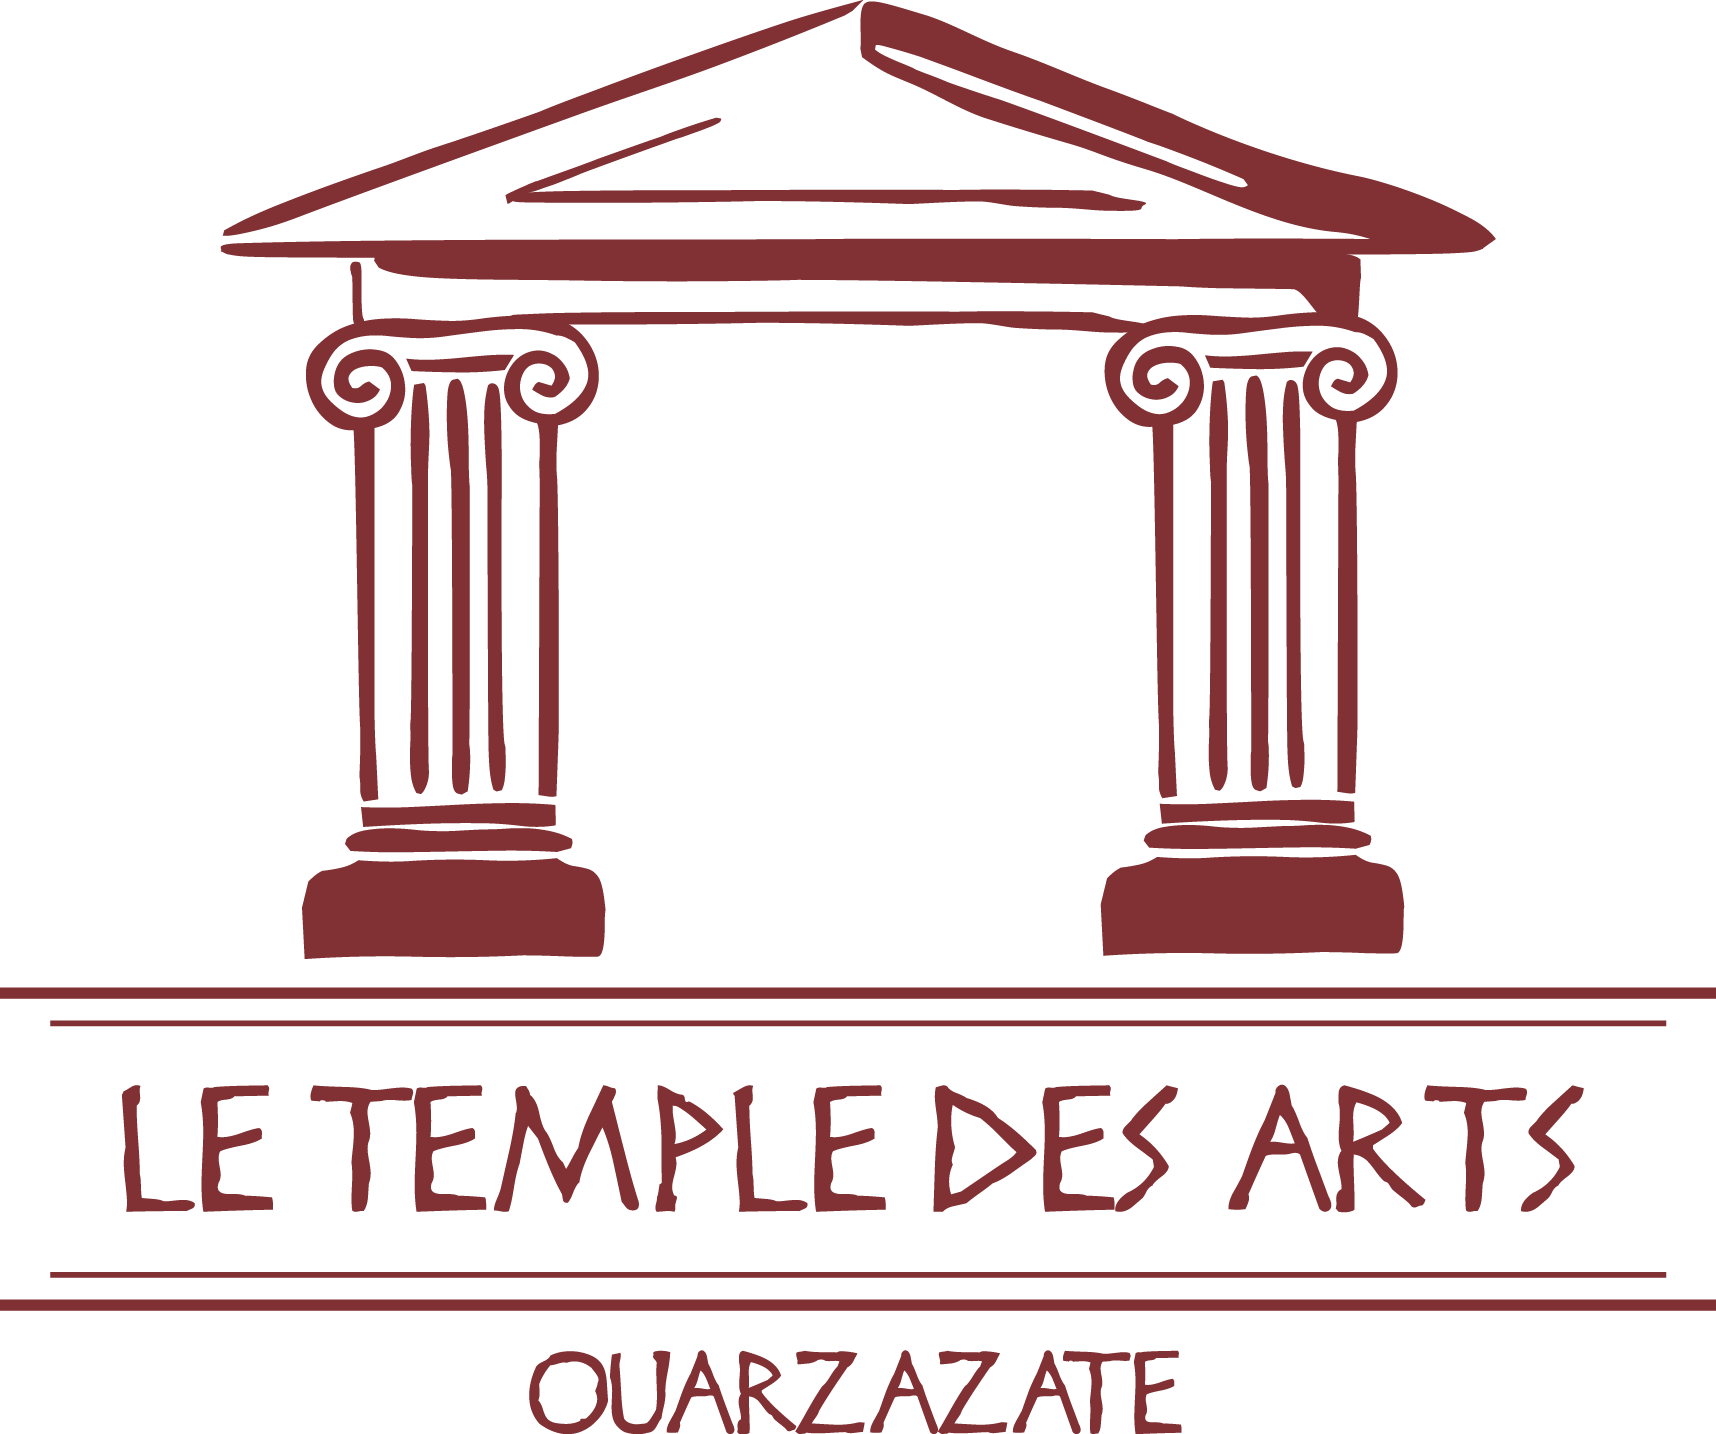 Le Temple des Arts